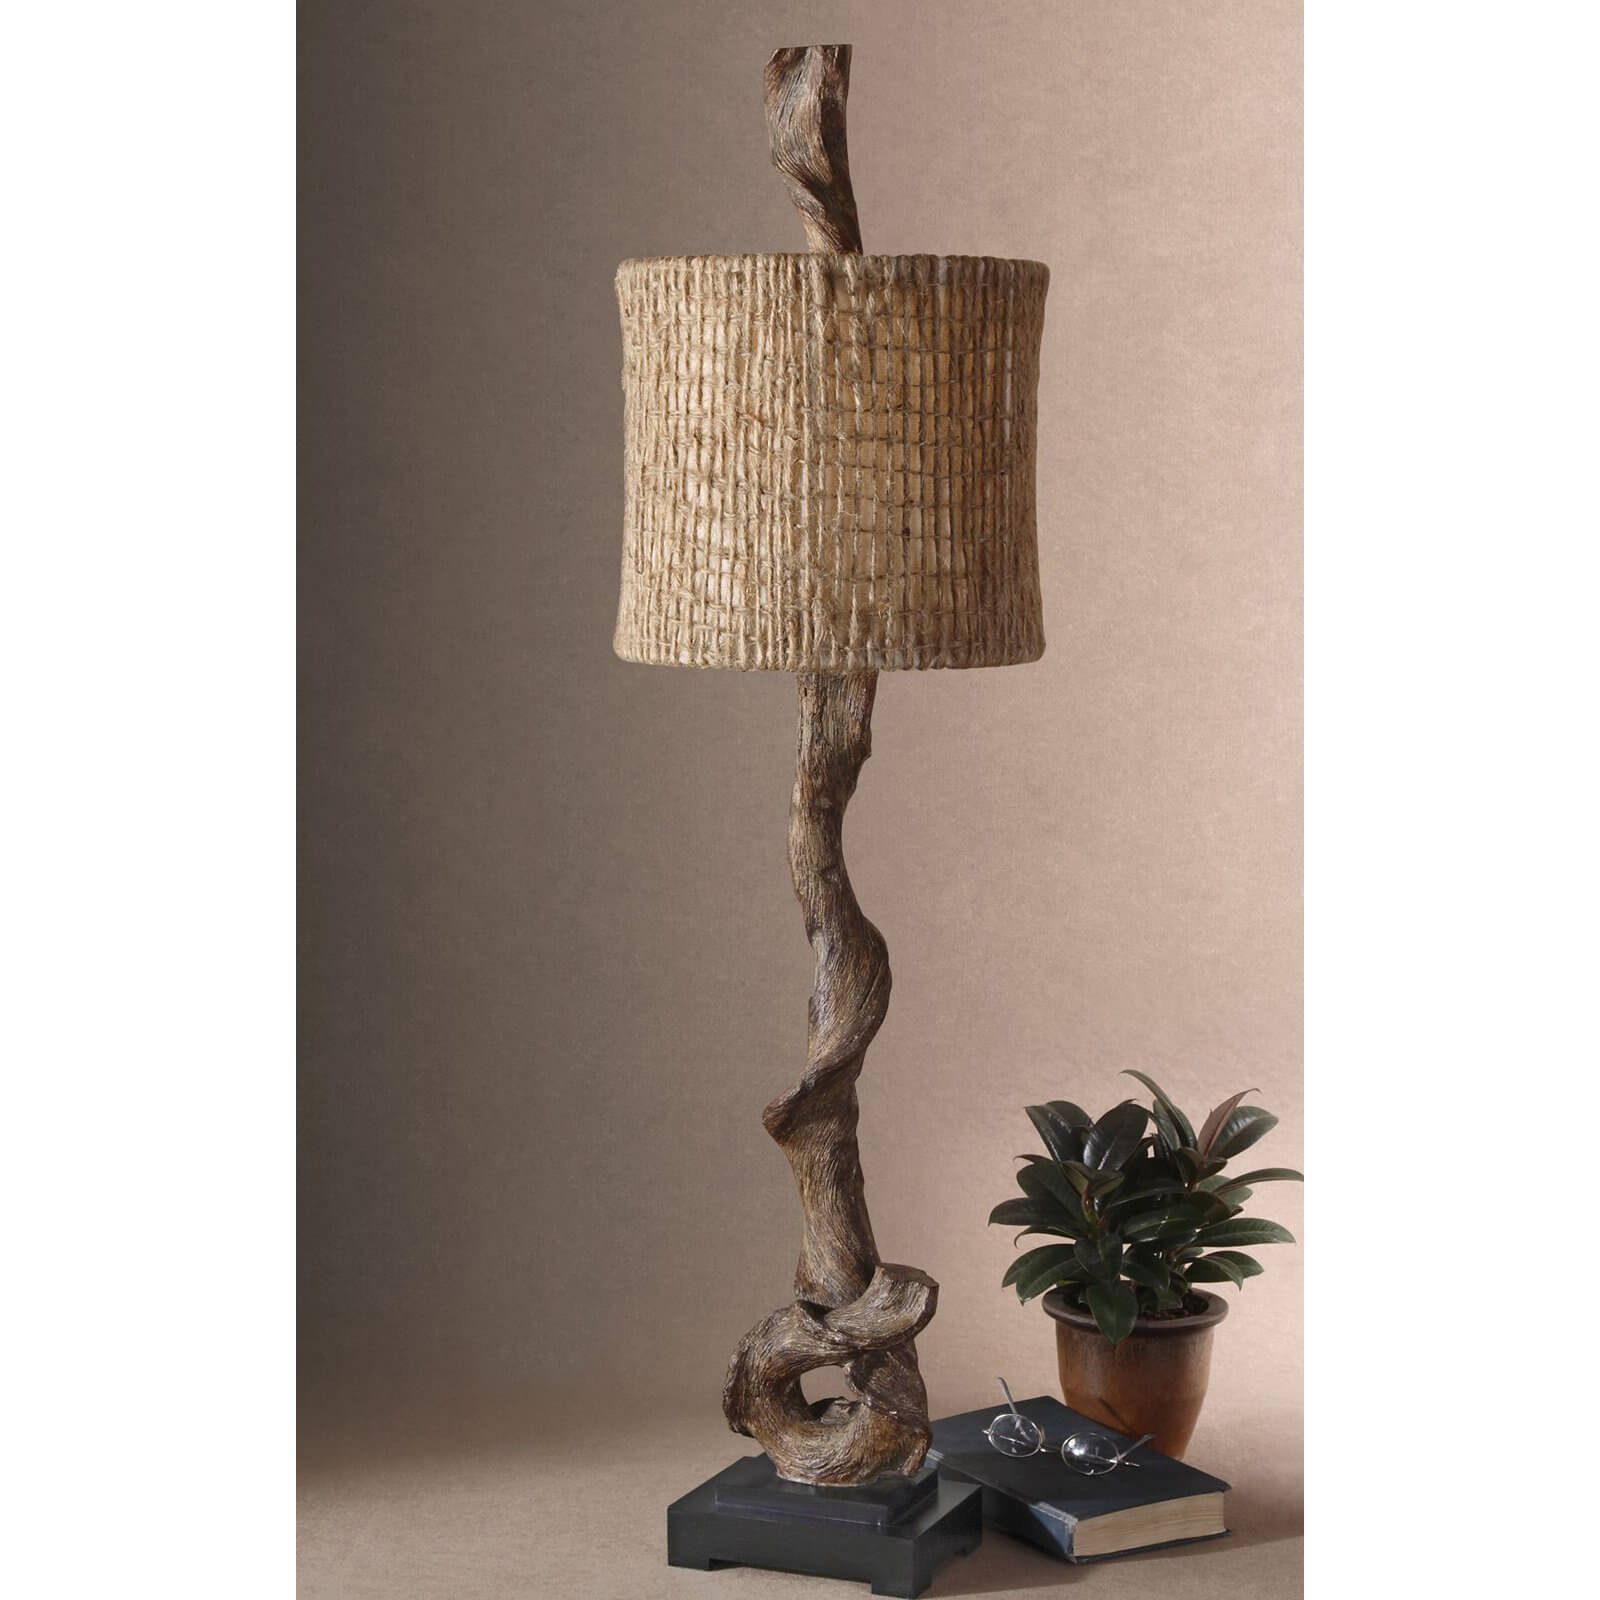 Our second buffet lamp is a unique piece done in a natural, rustic style, with the central shaft crafted from a twisted piece of wood.